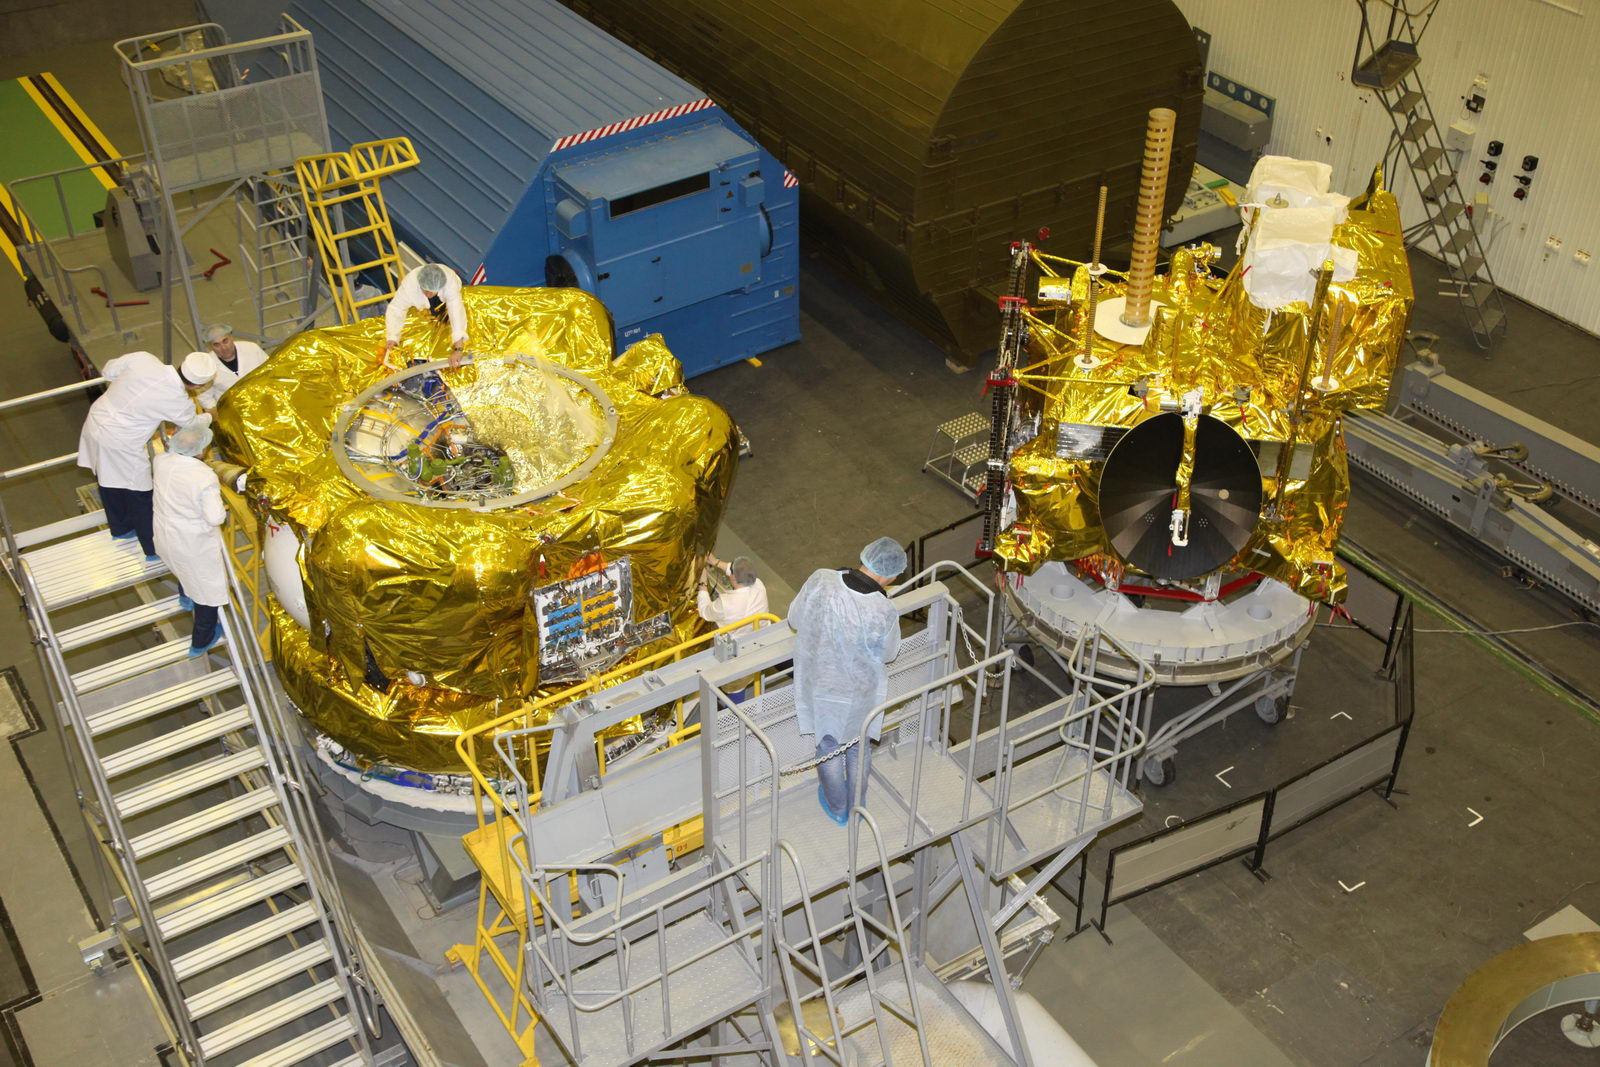 The Fregat SB upper stage is pictured with the Elektro-L 2 satellite during launch preparations. Credit: TsENKI